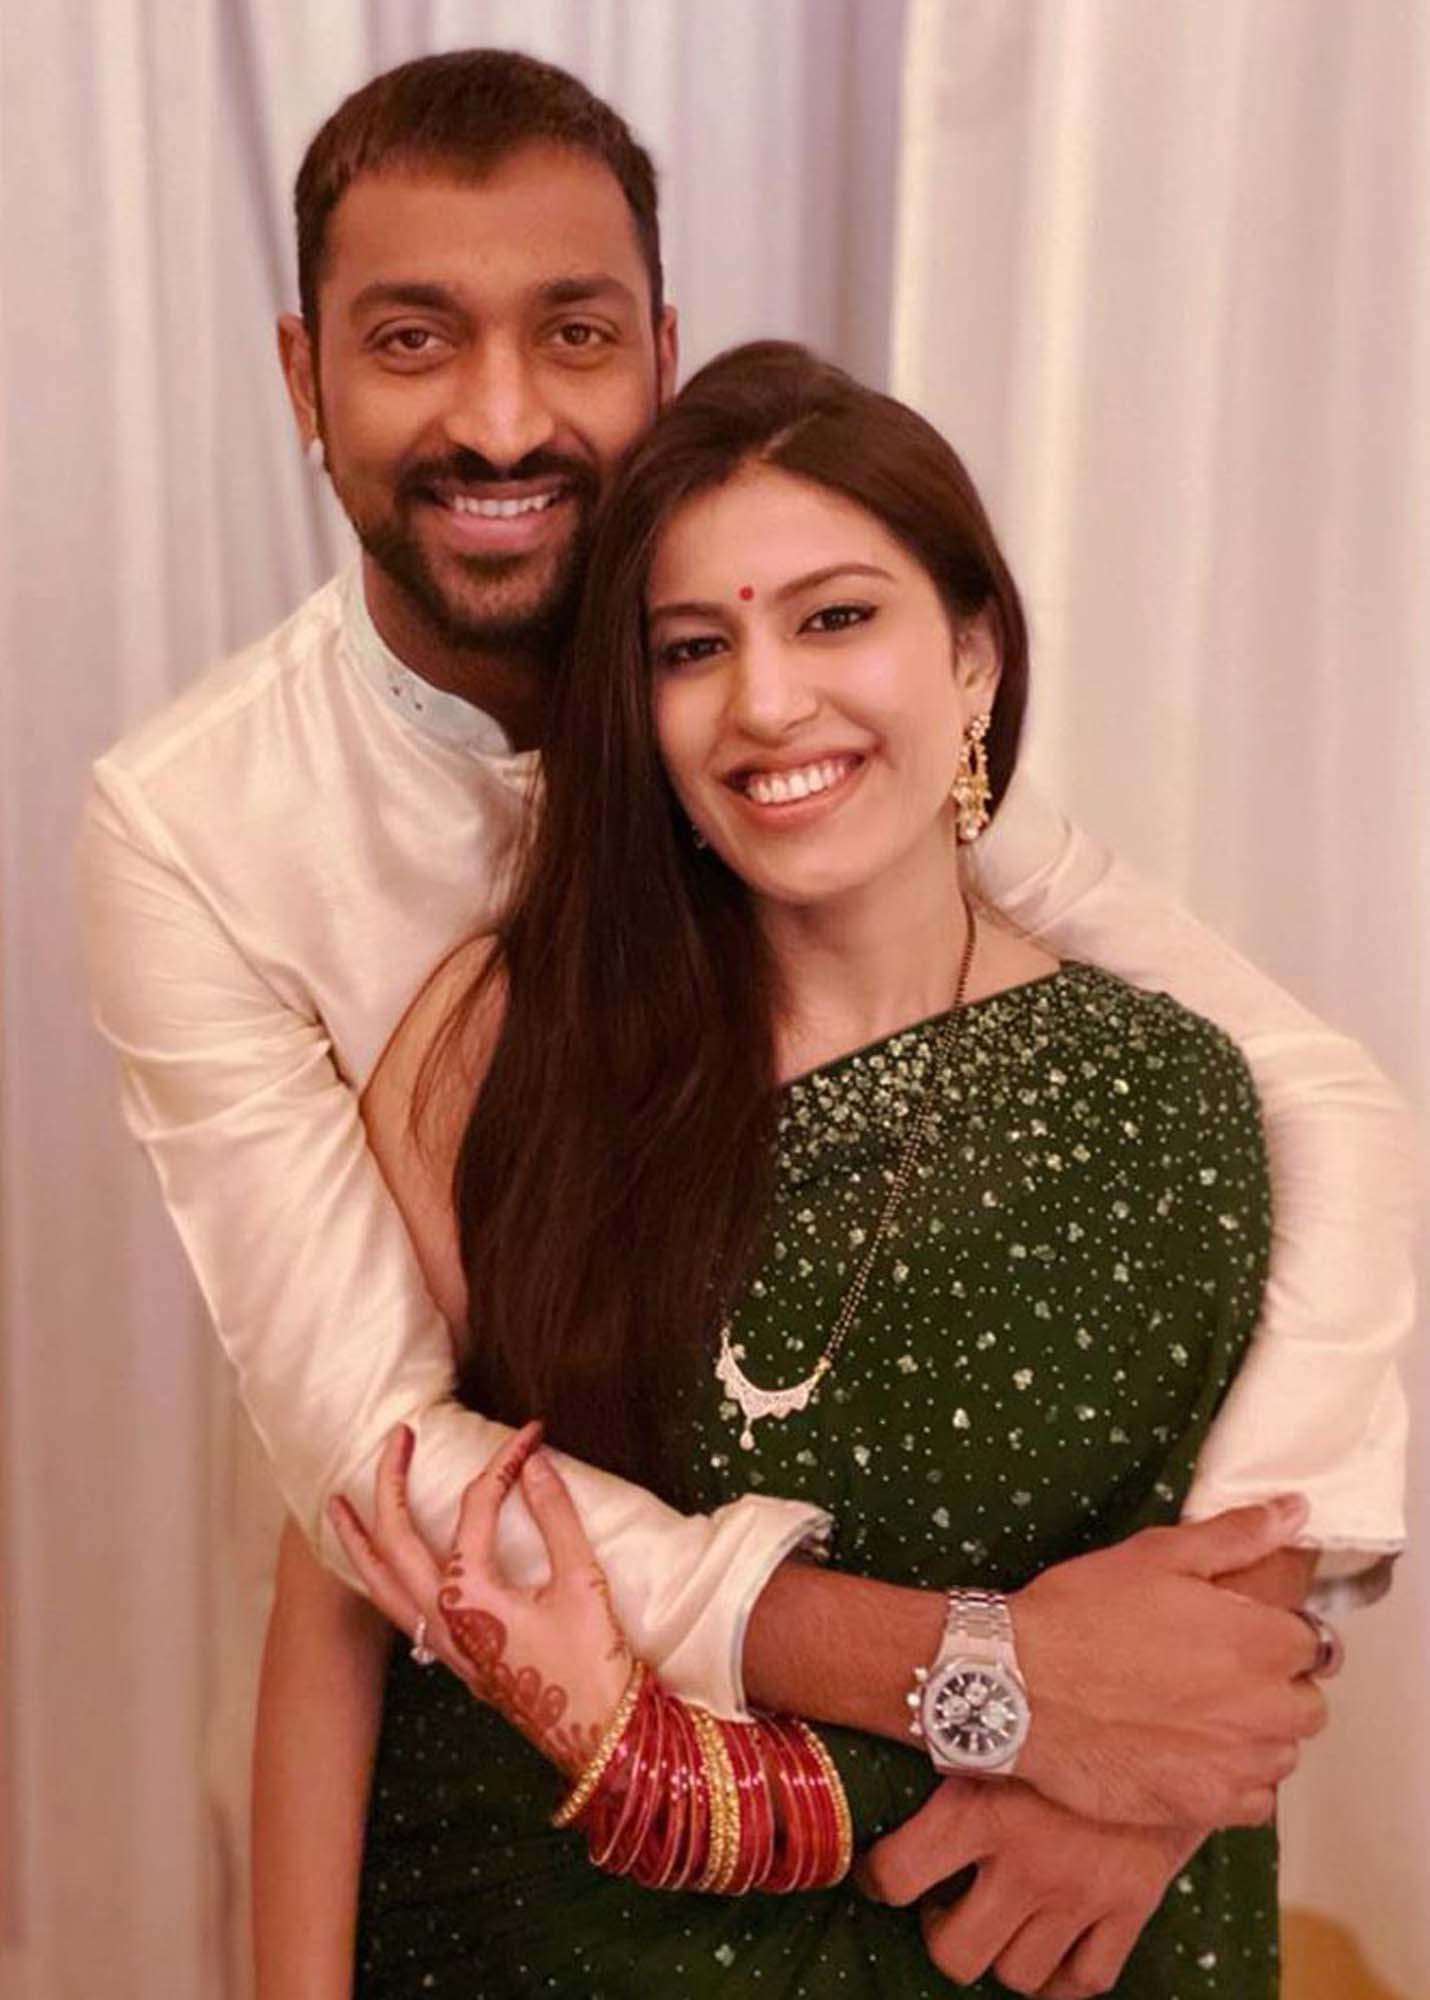 These romantic pictures of Krunal Pandya and his wife Pankhuri are winning the internet